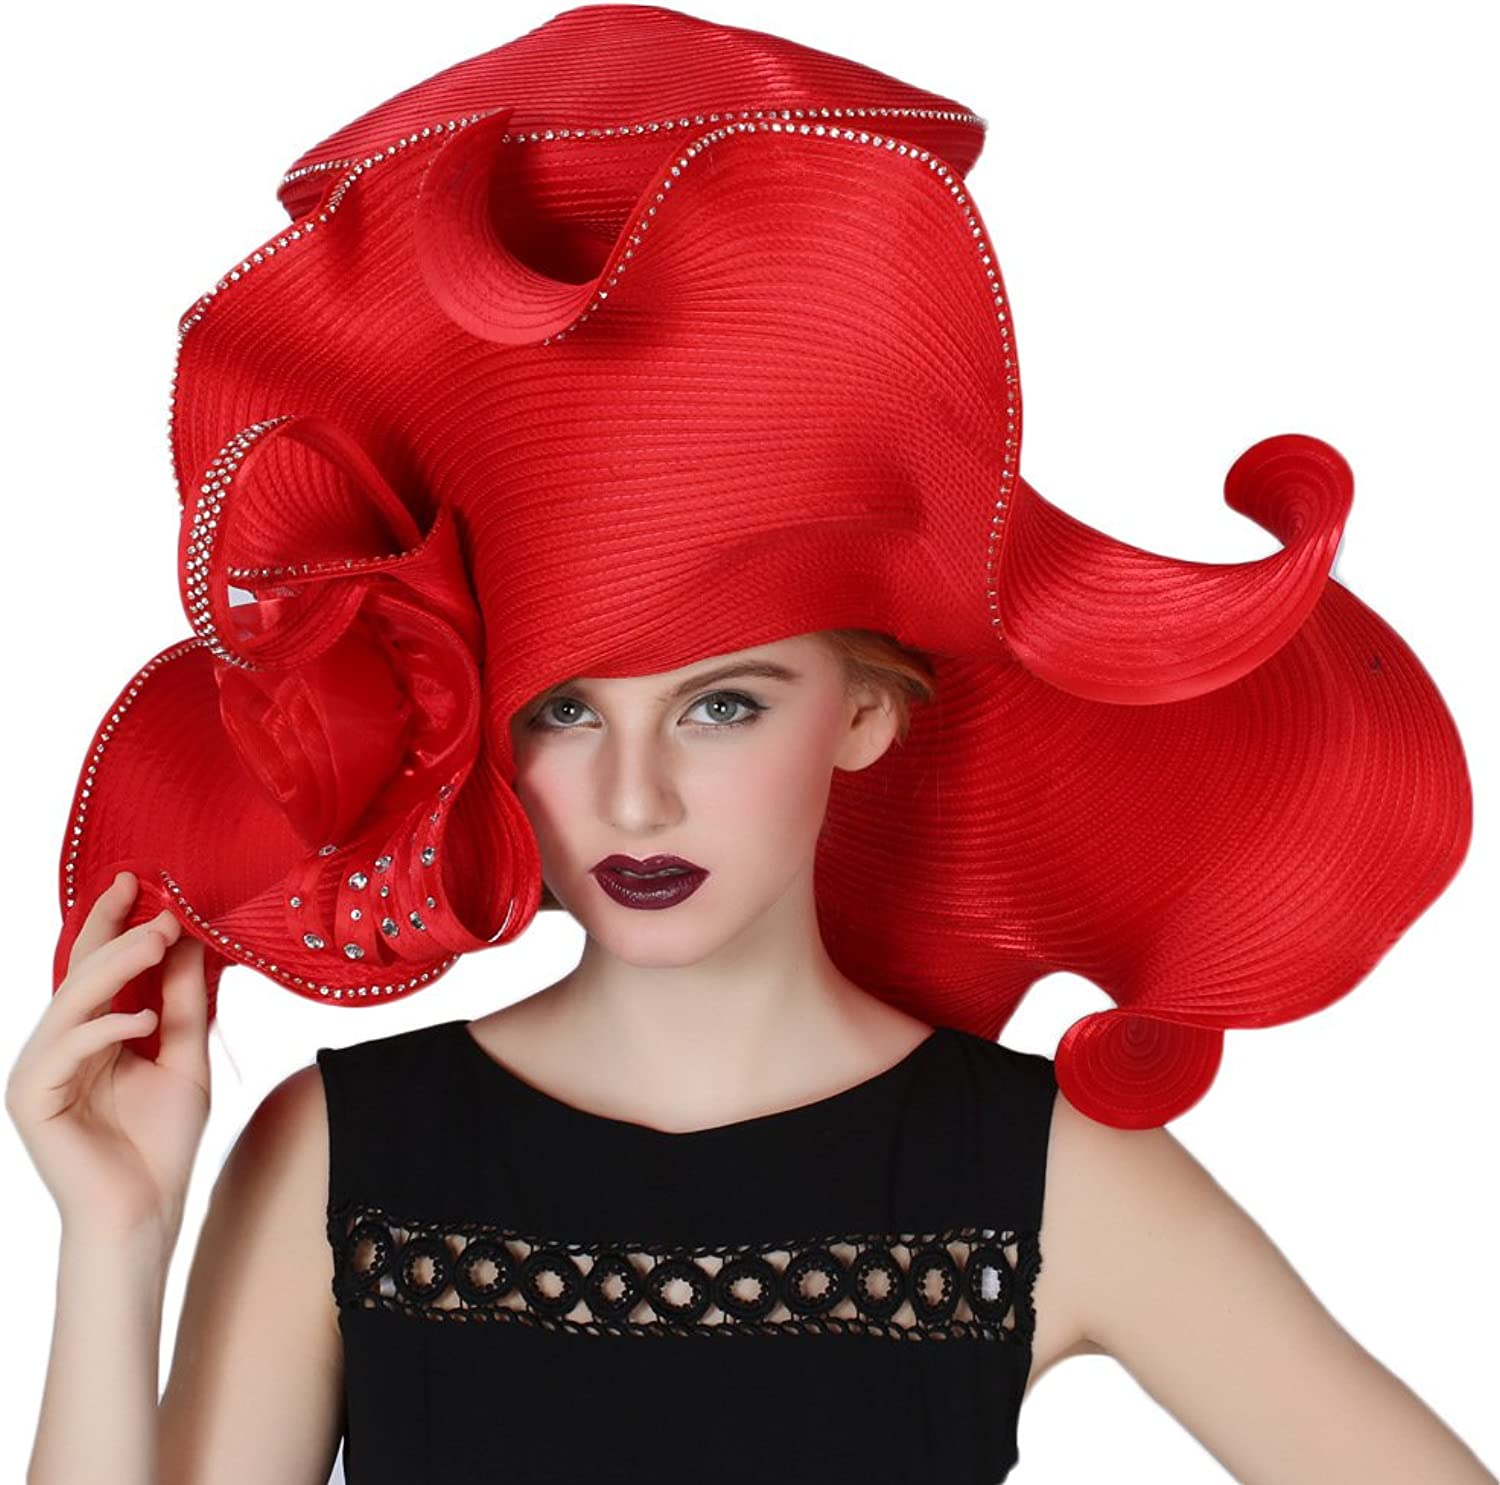 June's Young Women's Hats Church Hat Dressy Formal Hats Large Brim Red color